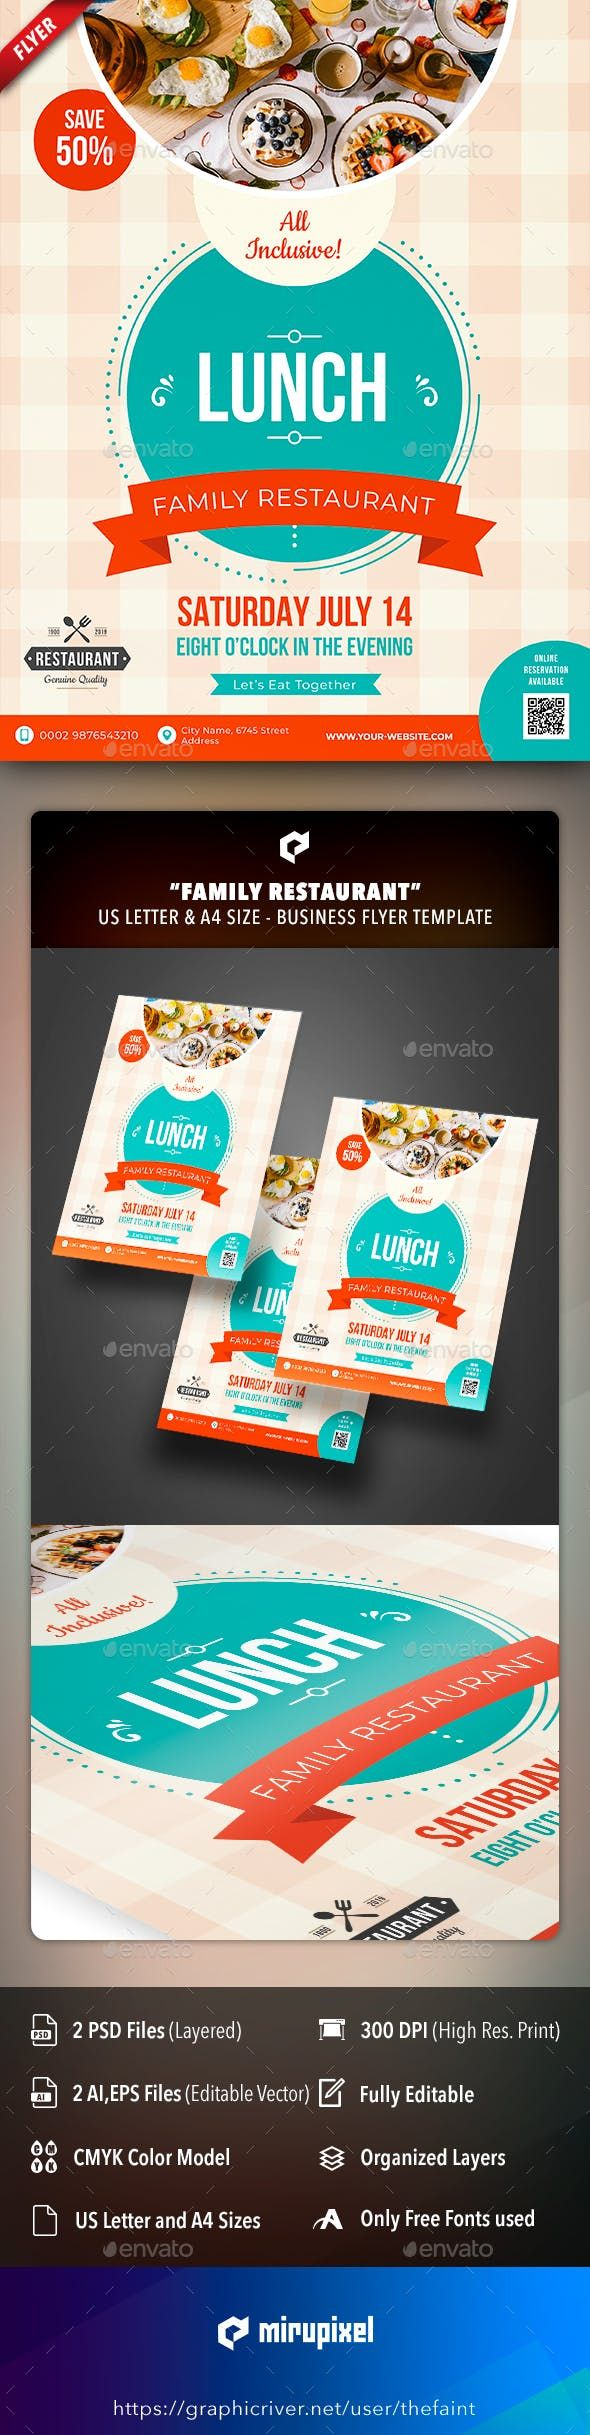 Family Restaurant Business Flyer by thefaint